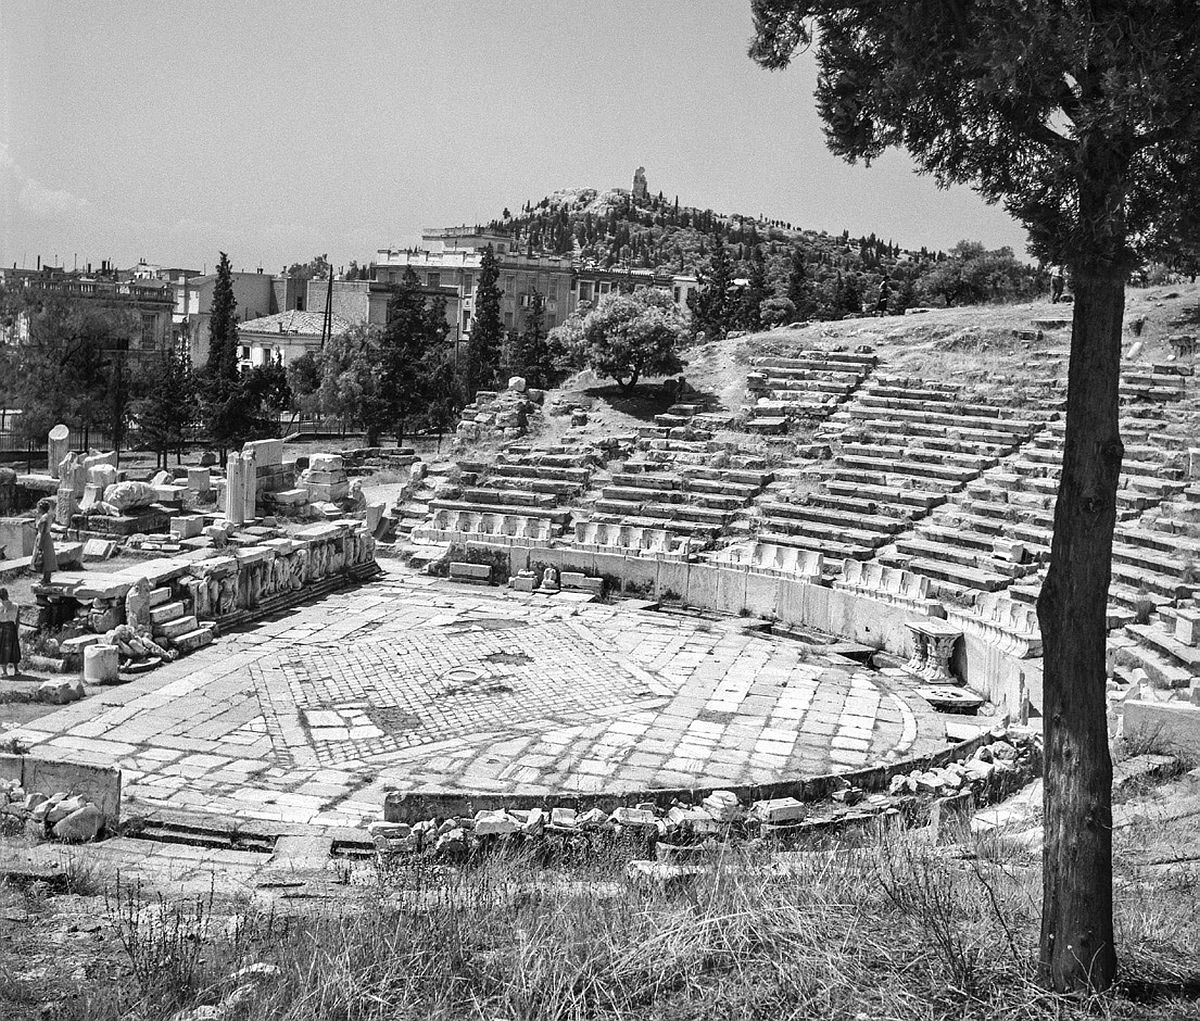 """Theatre of Dionysus. Photograph by Robert McCabe on show in the exhibition """"Chronography-An Exhibition for the 180th anniversary (1837-2017) of the Archaeological Society""""."""